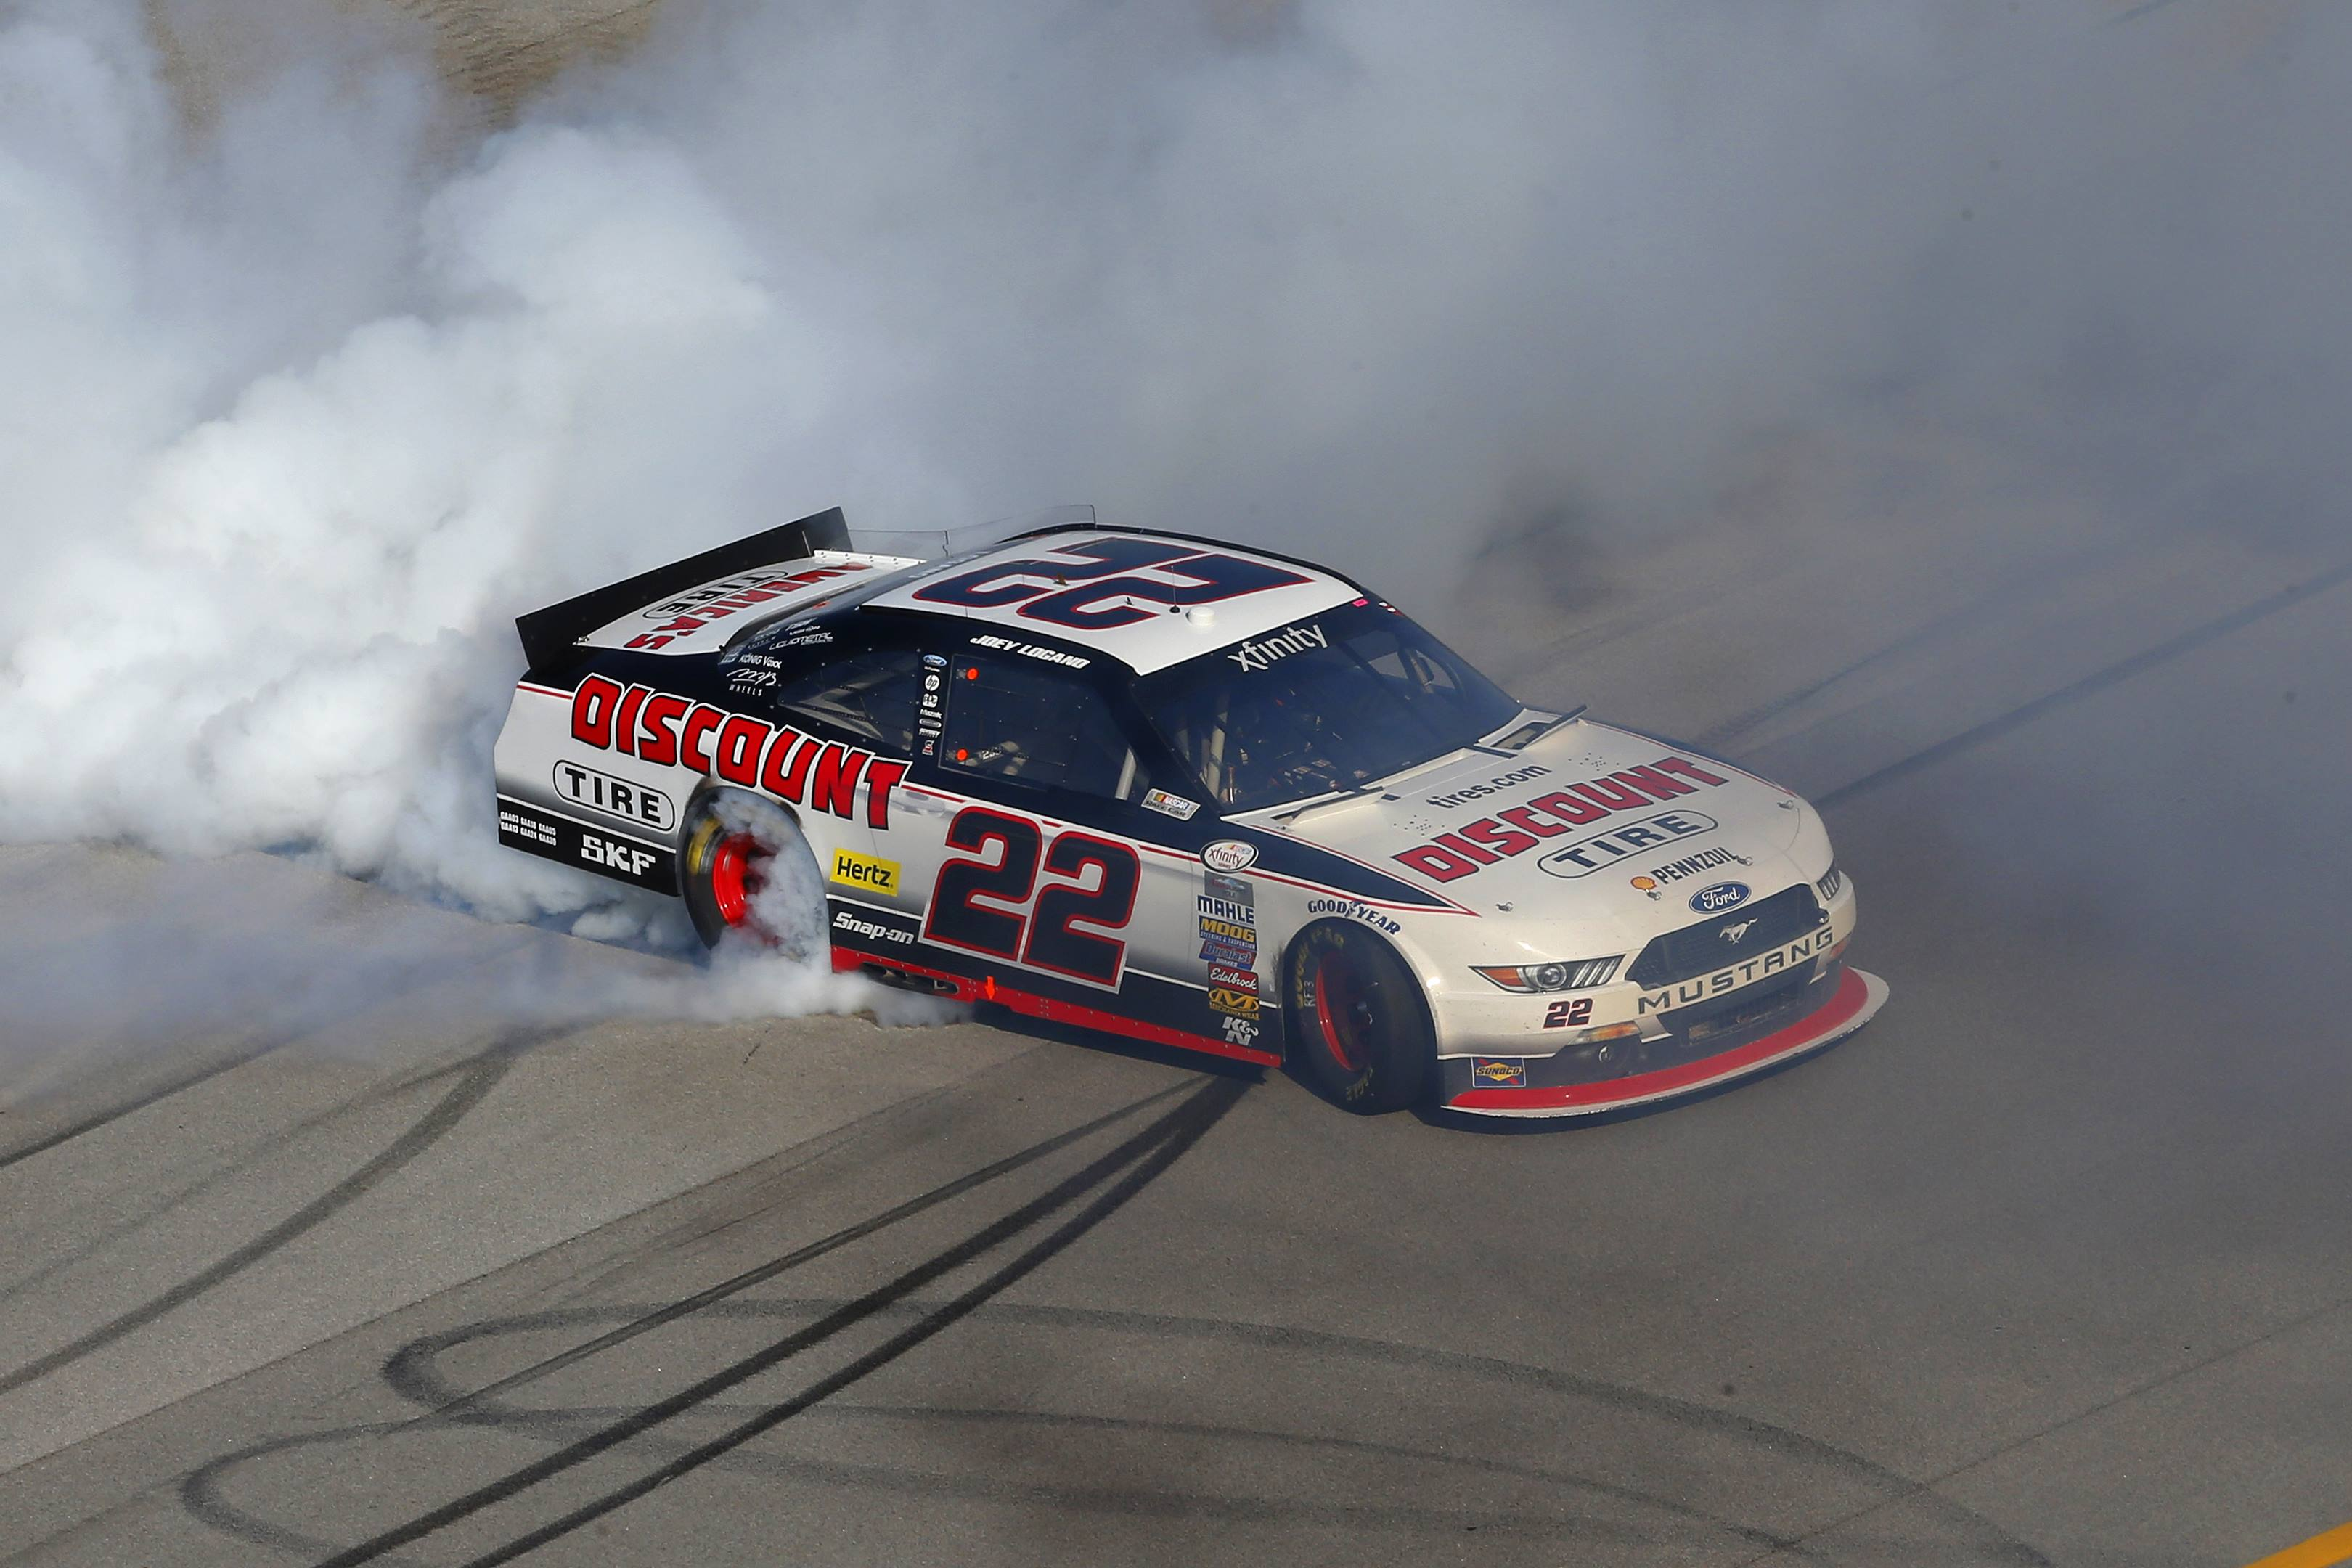 The Mustang used in the Monster Energy Cup Series should look a lot closer to the production car than the Mustang that raced in the Xfinity Series